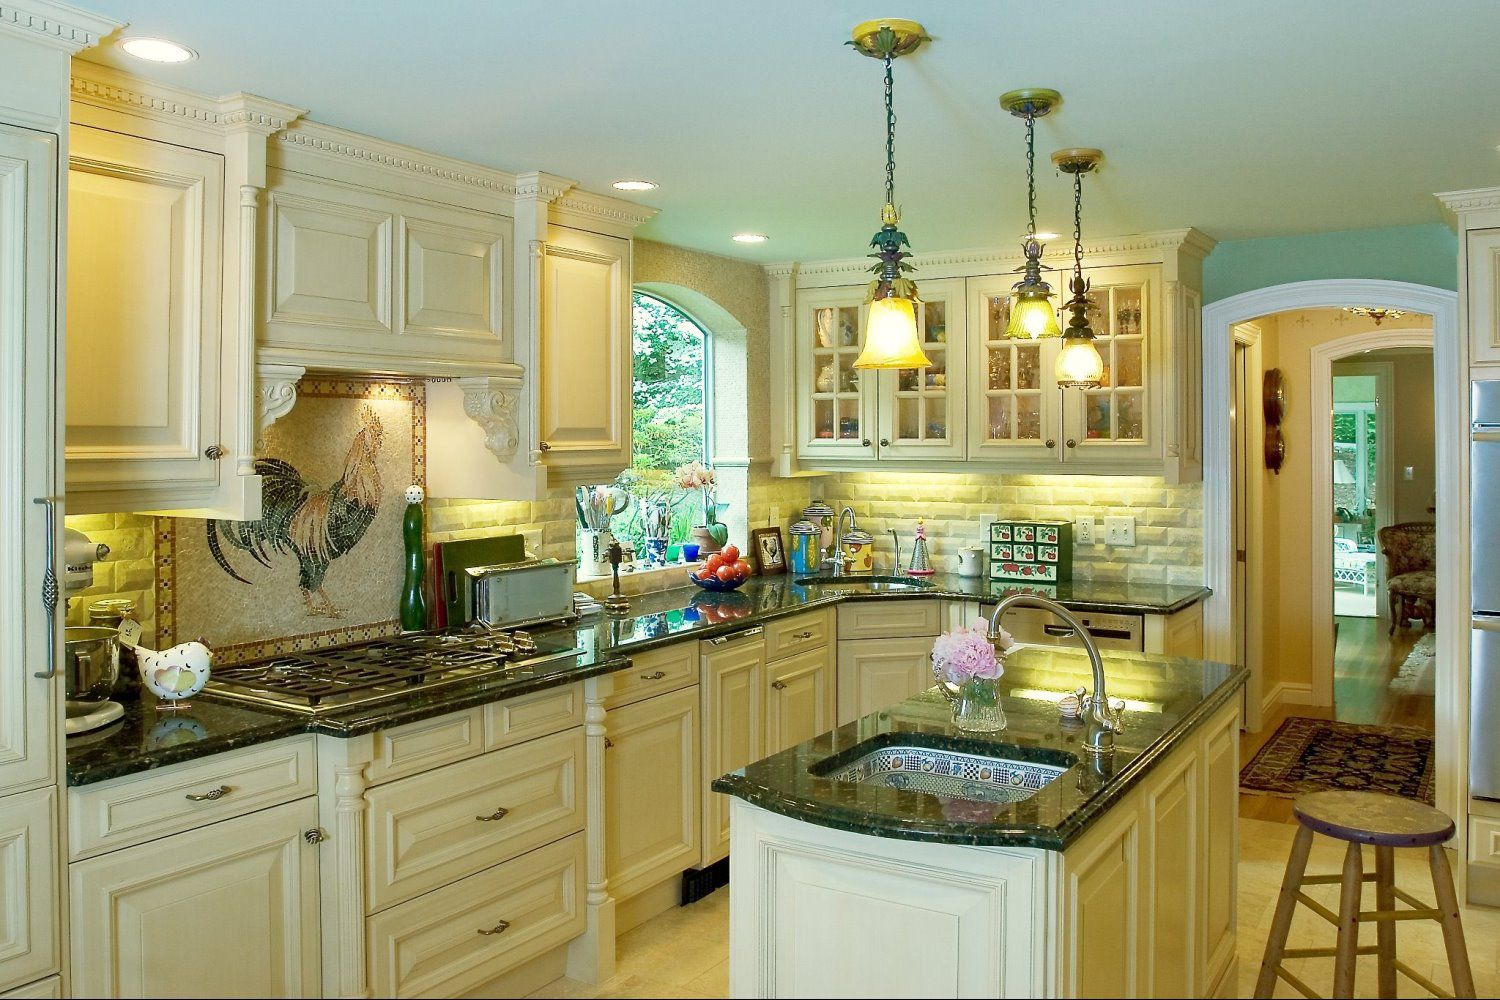 Uncategorized Kitchens By Design home kitchens by design inc image